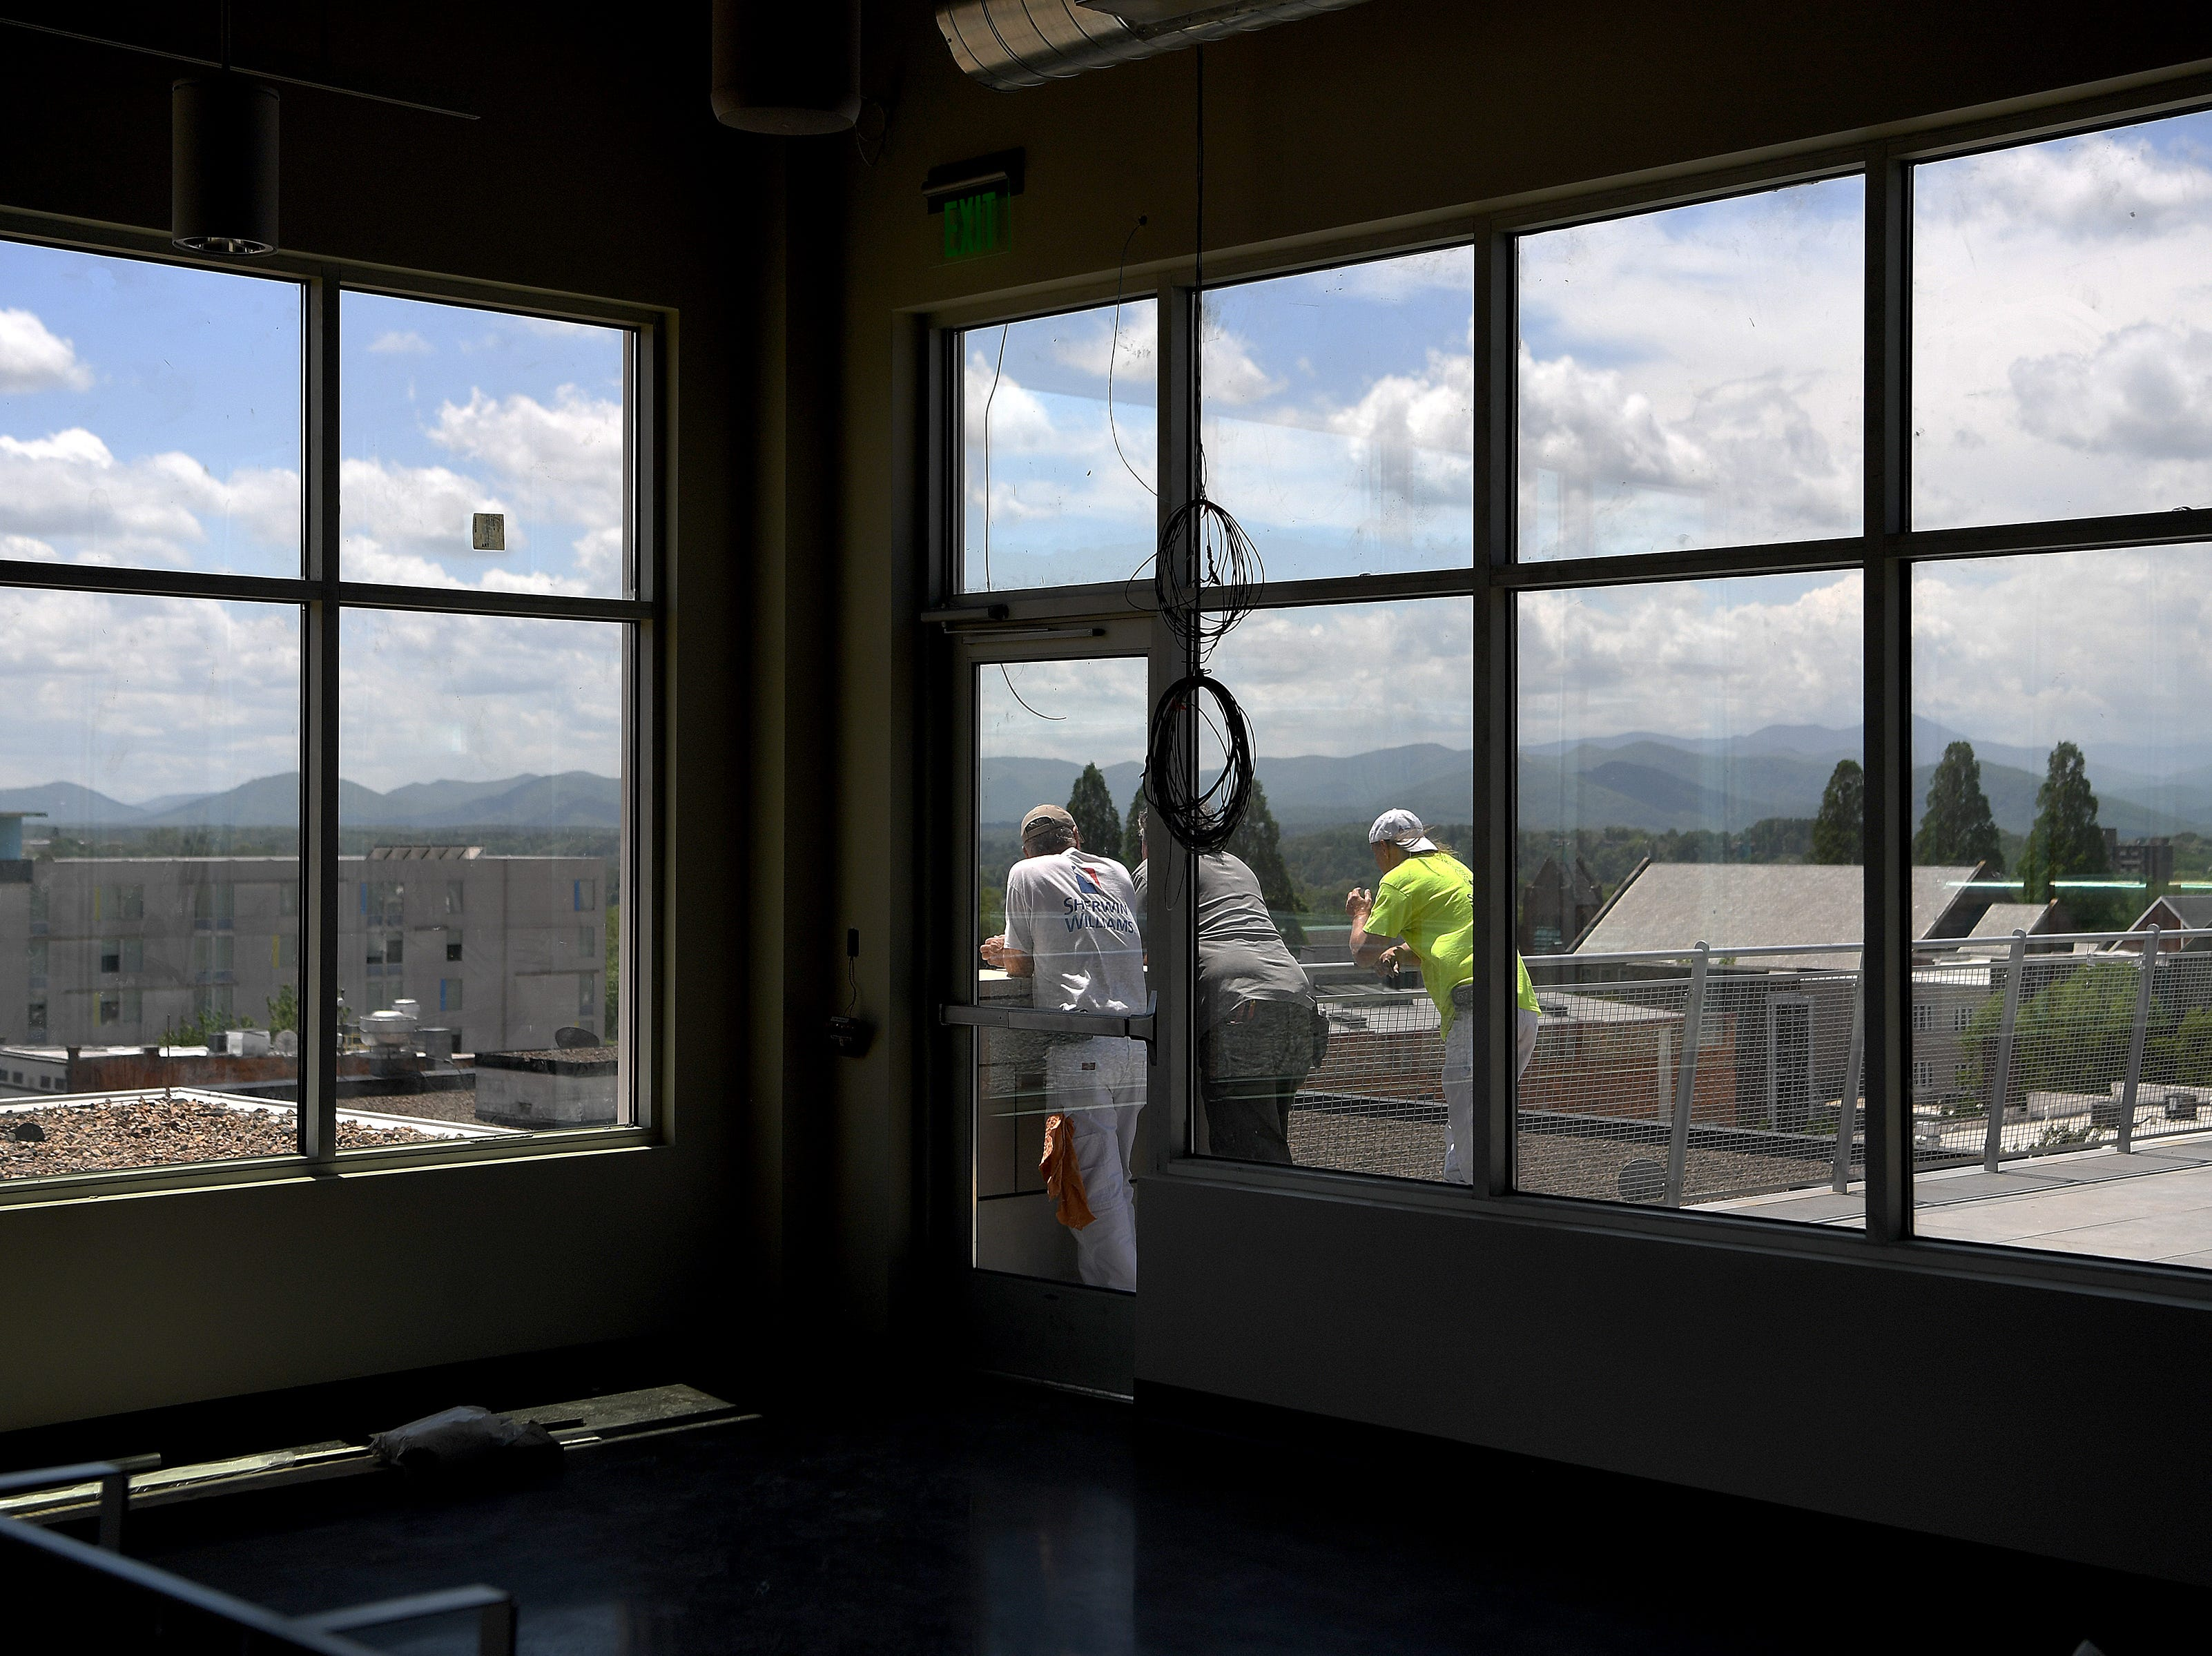 A new rooftop cafe, adjacent to the sculpture terrace will be opening during museum hours at the Asheville Art Museum when the building opens this summer.